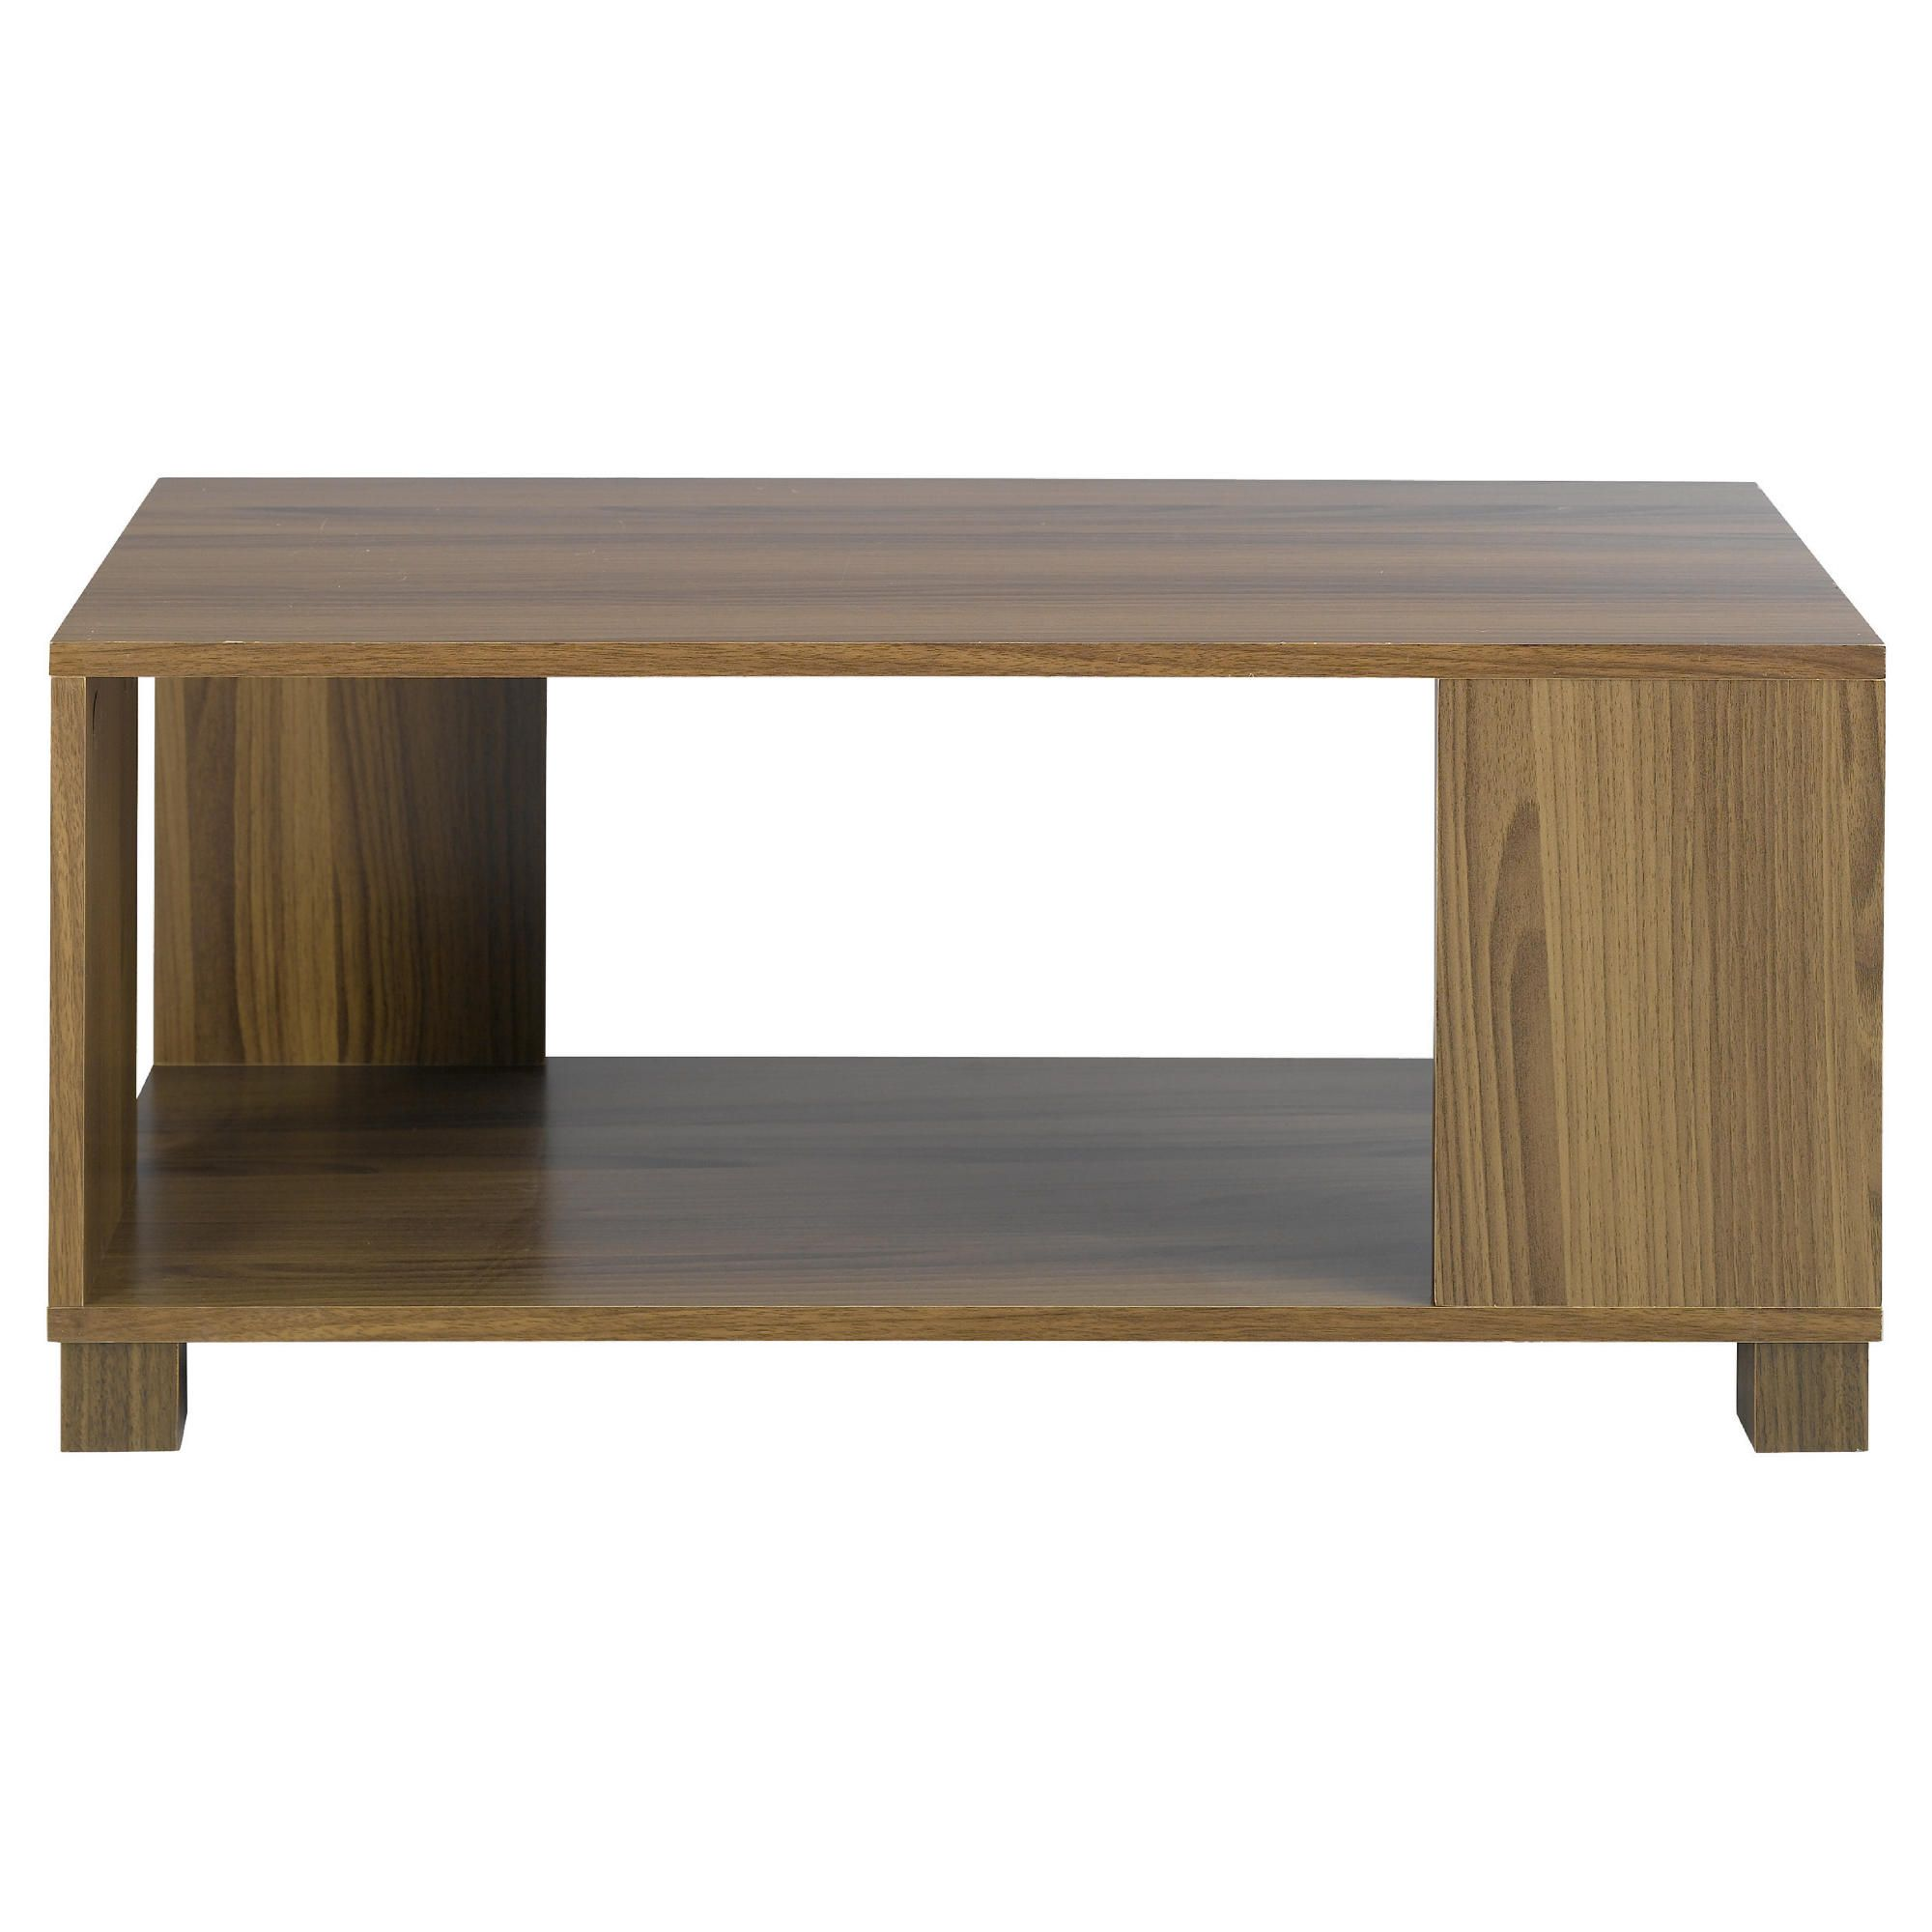 Walnut Coffee Tables : 207 9029PITPS637648wid2000amphei2000 from shopwalnutfurniture.co.uk size 2000 x 2000 jpeg 170kB